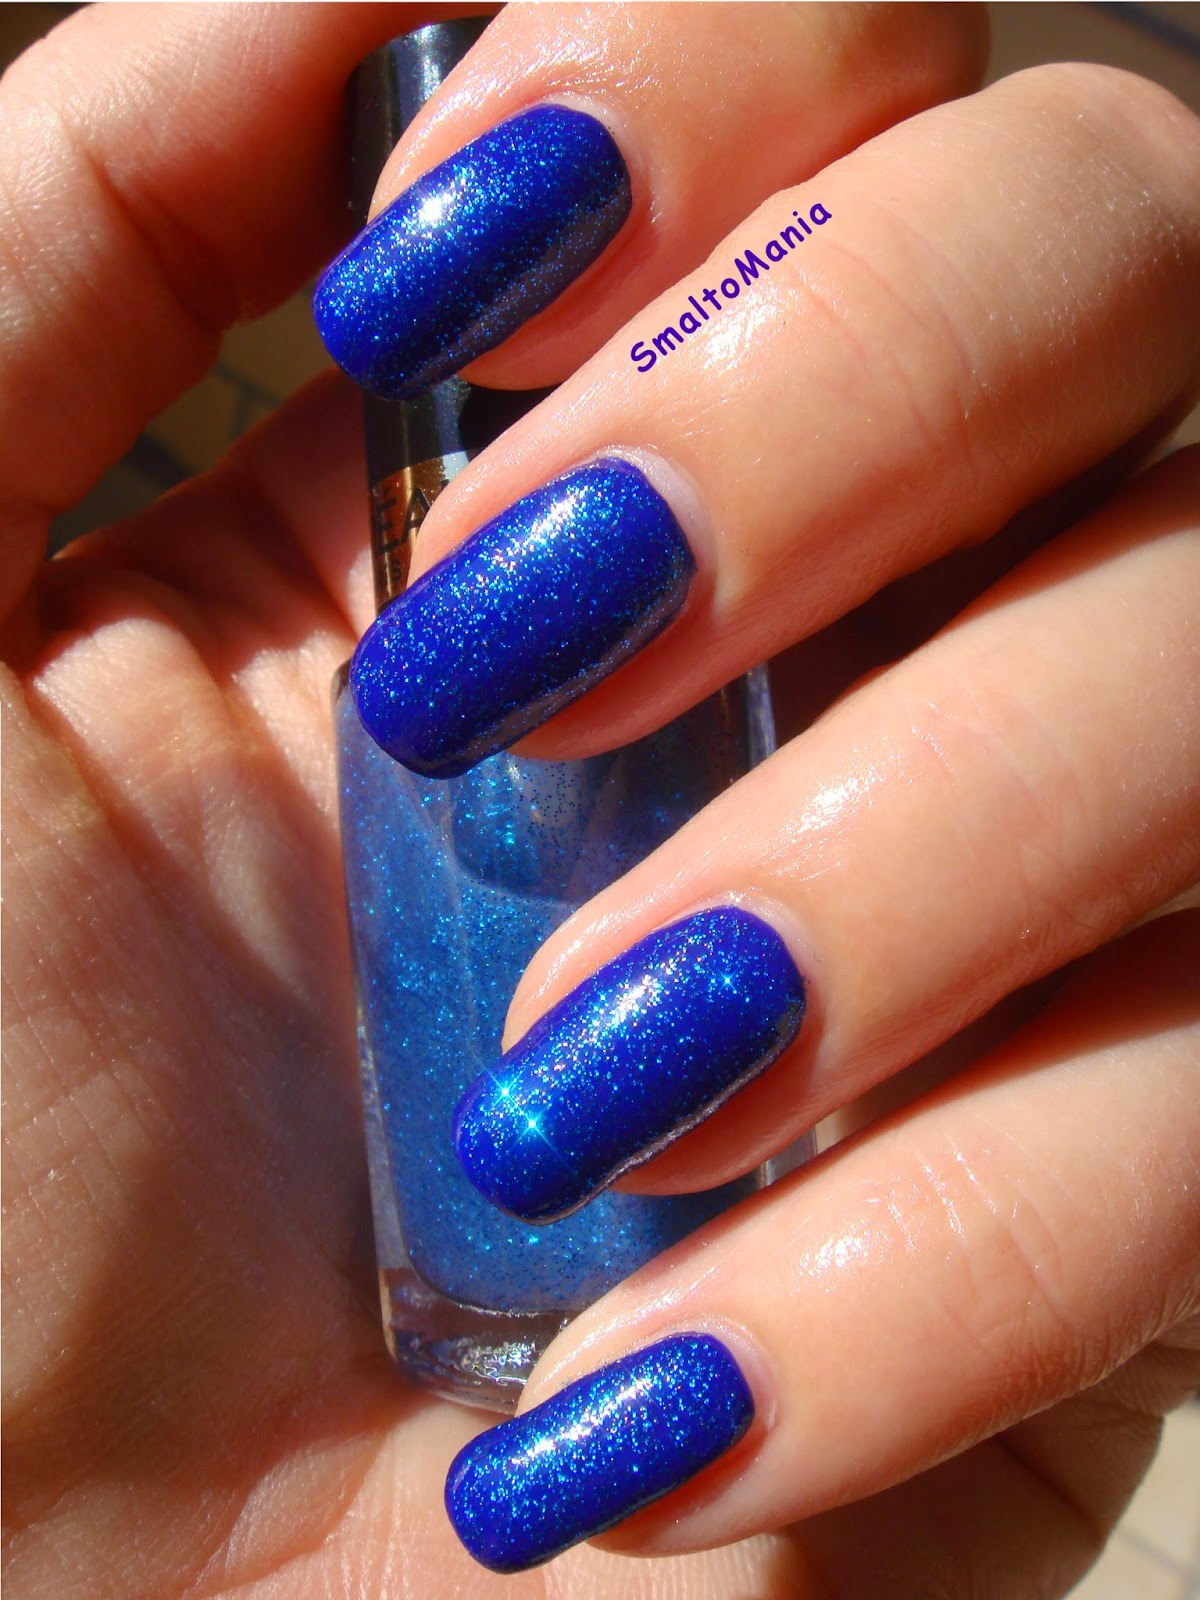 L'Oreal Saphyr Carat Top Coat